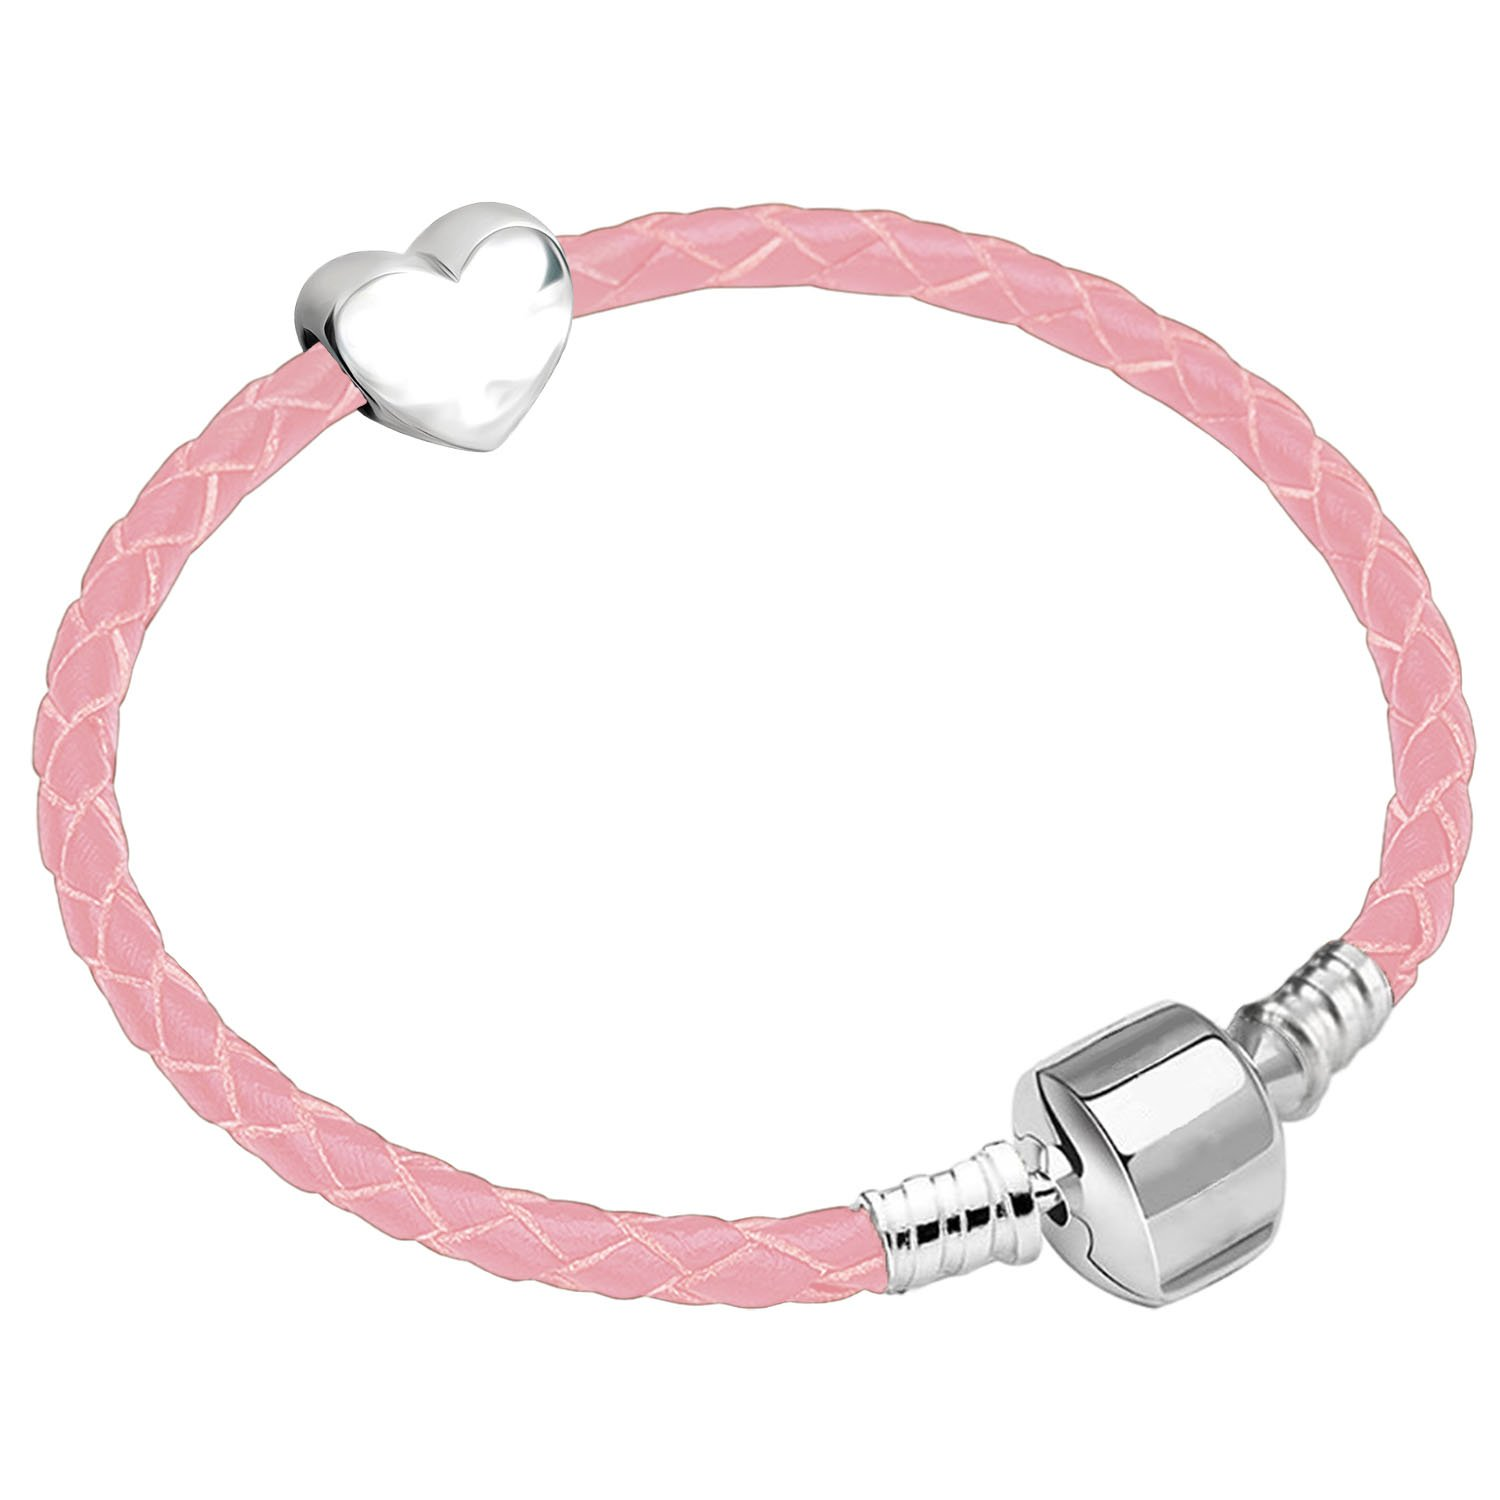 18cm Girls Leather Starter Charm Bracelet with Silver Heart and Gift Box for Age 12-18 Years Charm Buddy ®